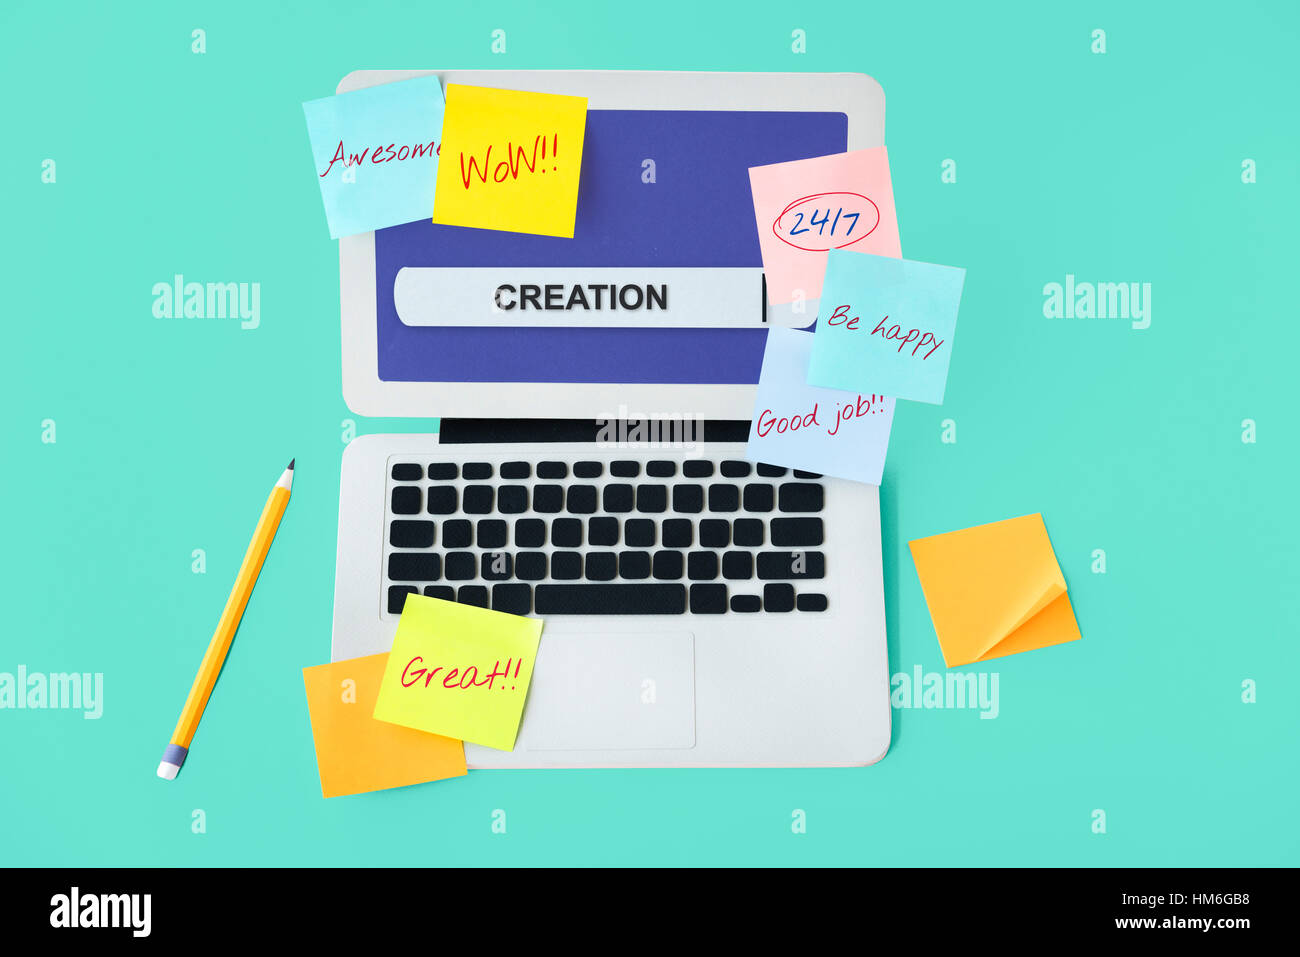 Work Ethic Concept Stock Photos & Work Ethic Concept Stock Images ...